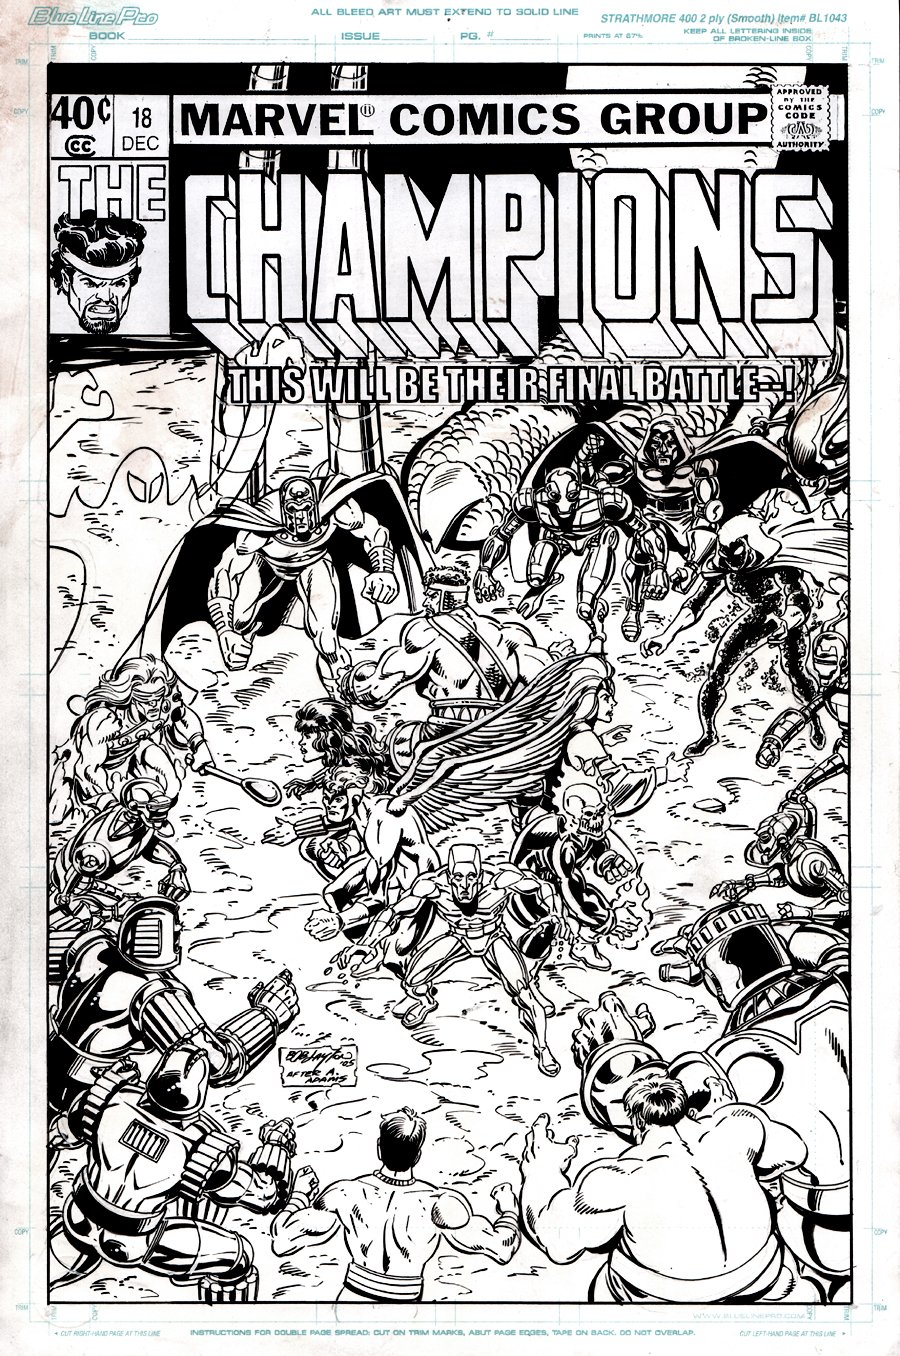 Champions #18 Unpublished Cover Homage to Art Adams: Classic X-Men #14 Cover (2005)